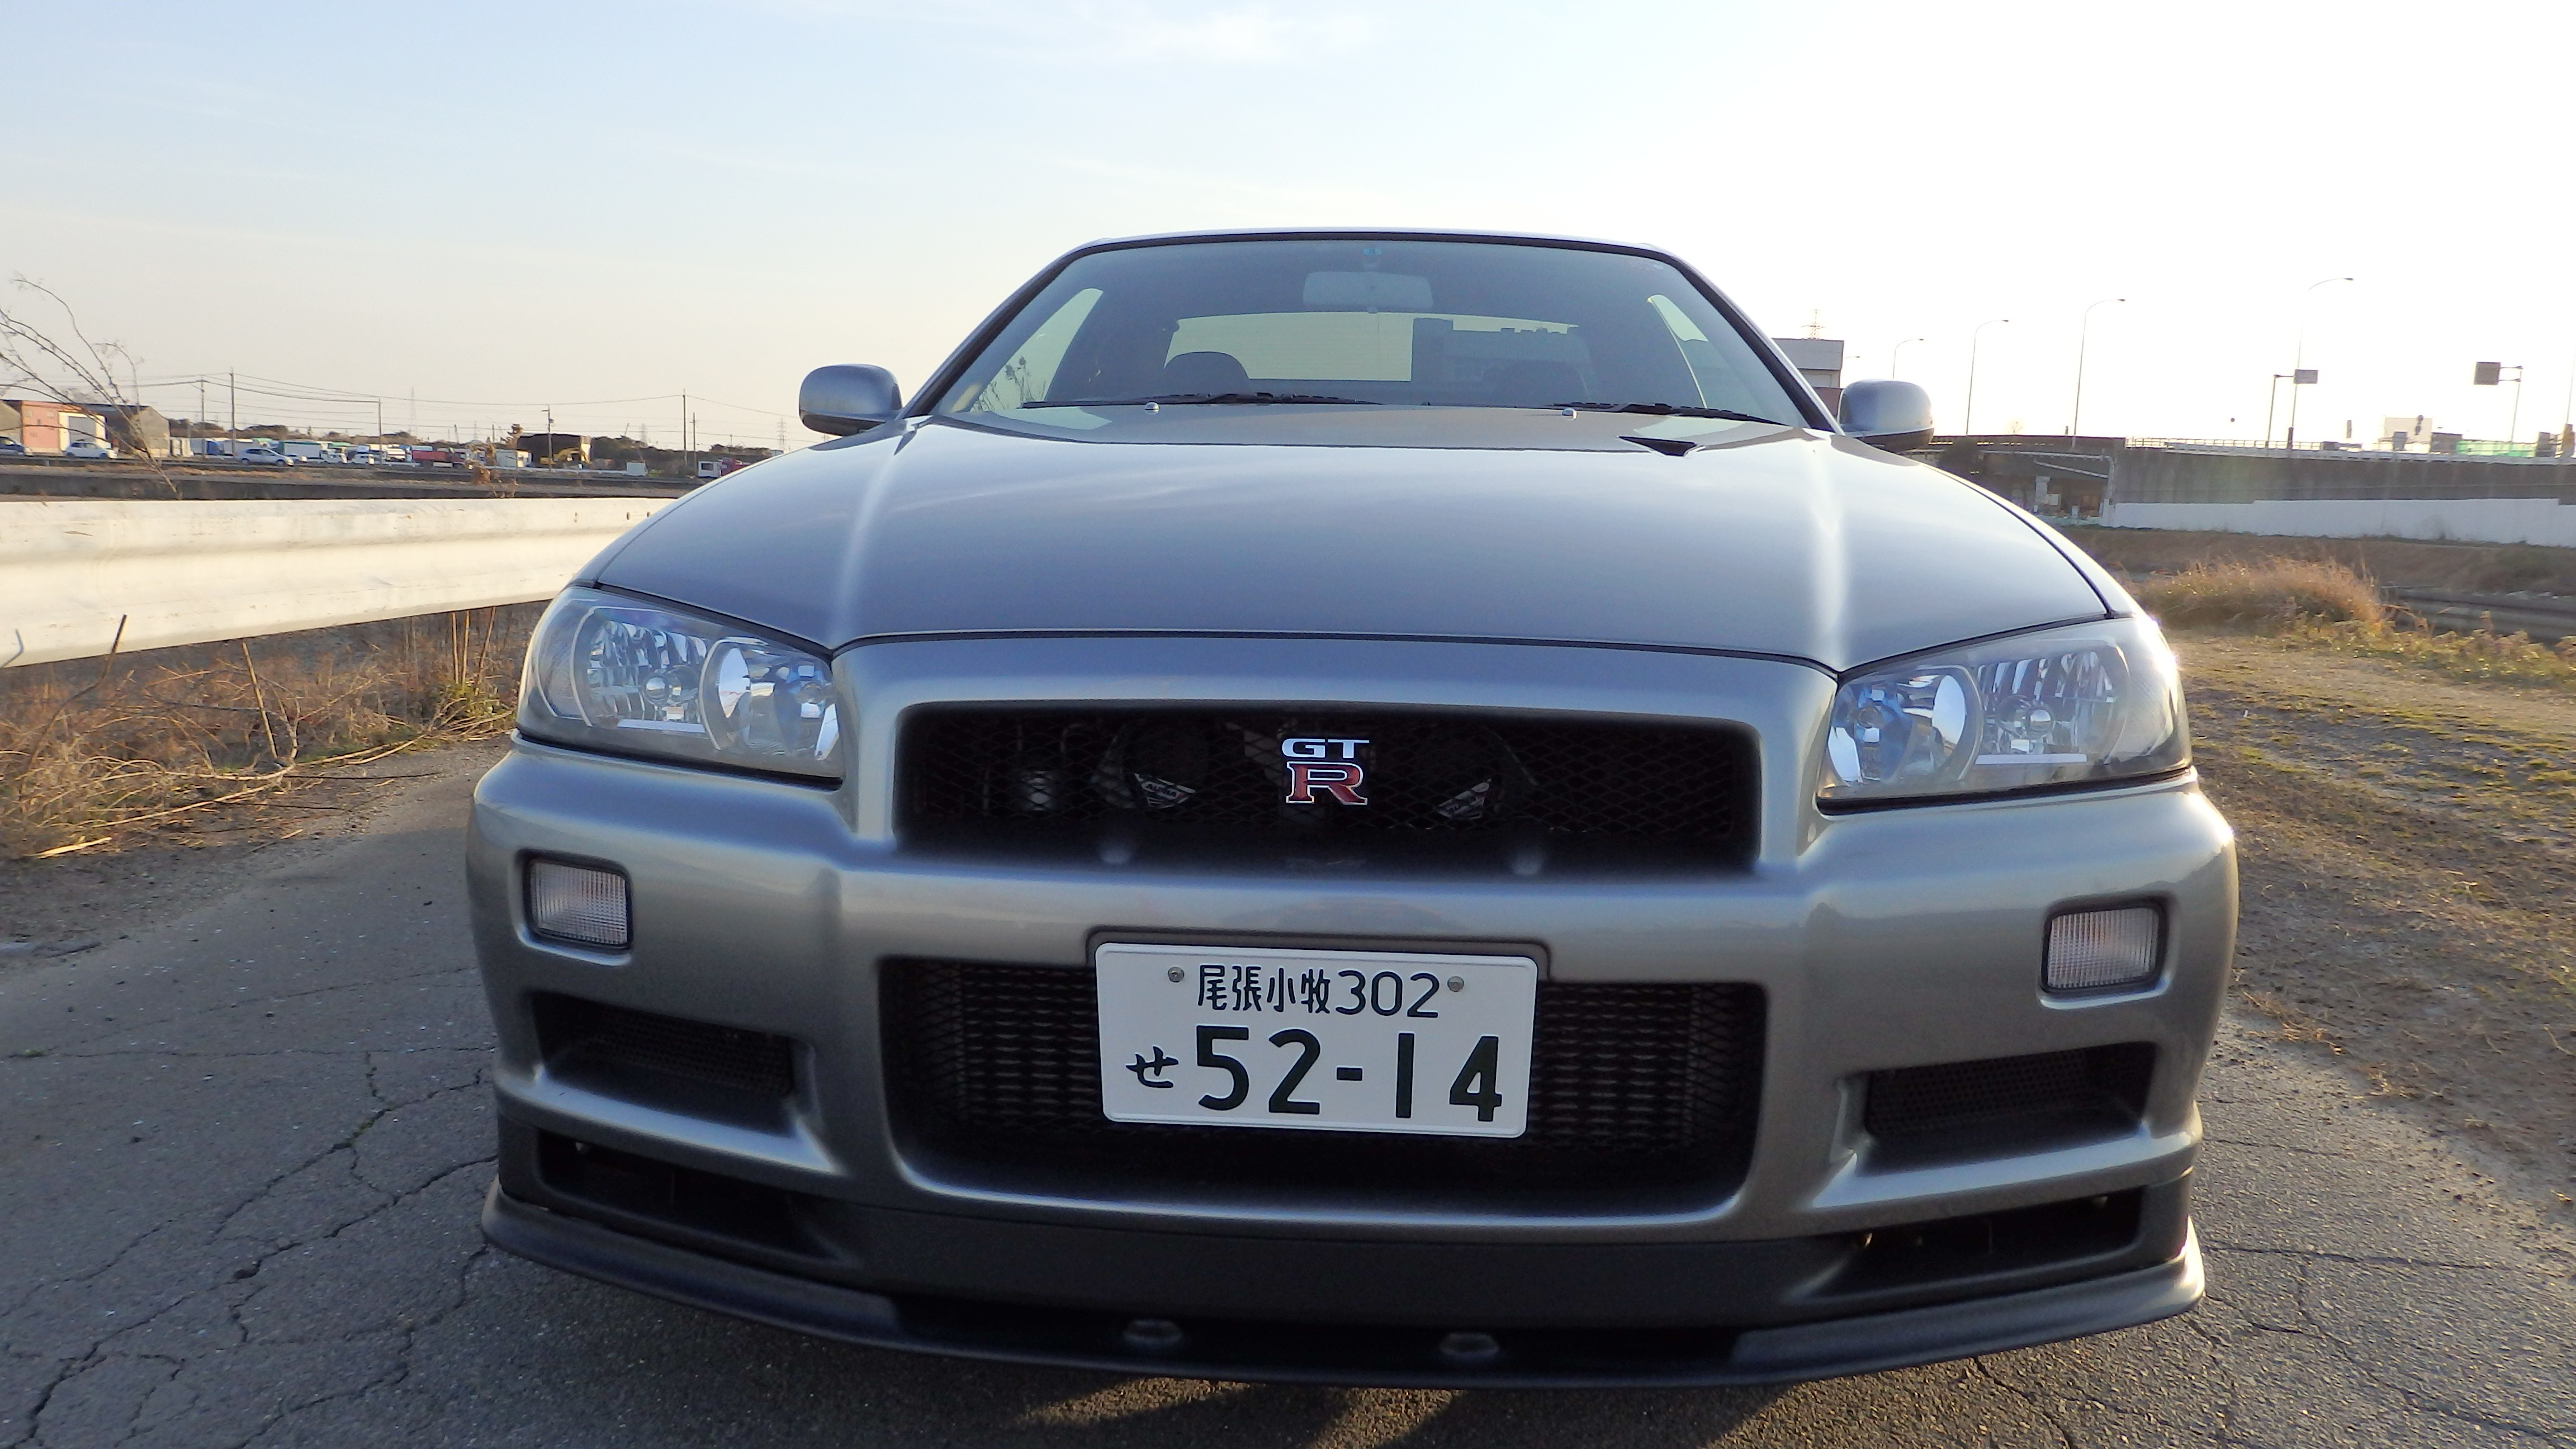 Nissan Skyline GTR R34 V spec II Nur for sale in Japan